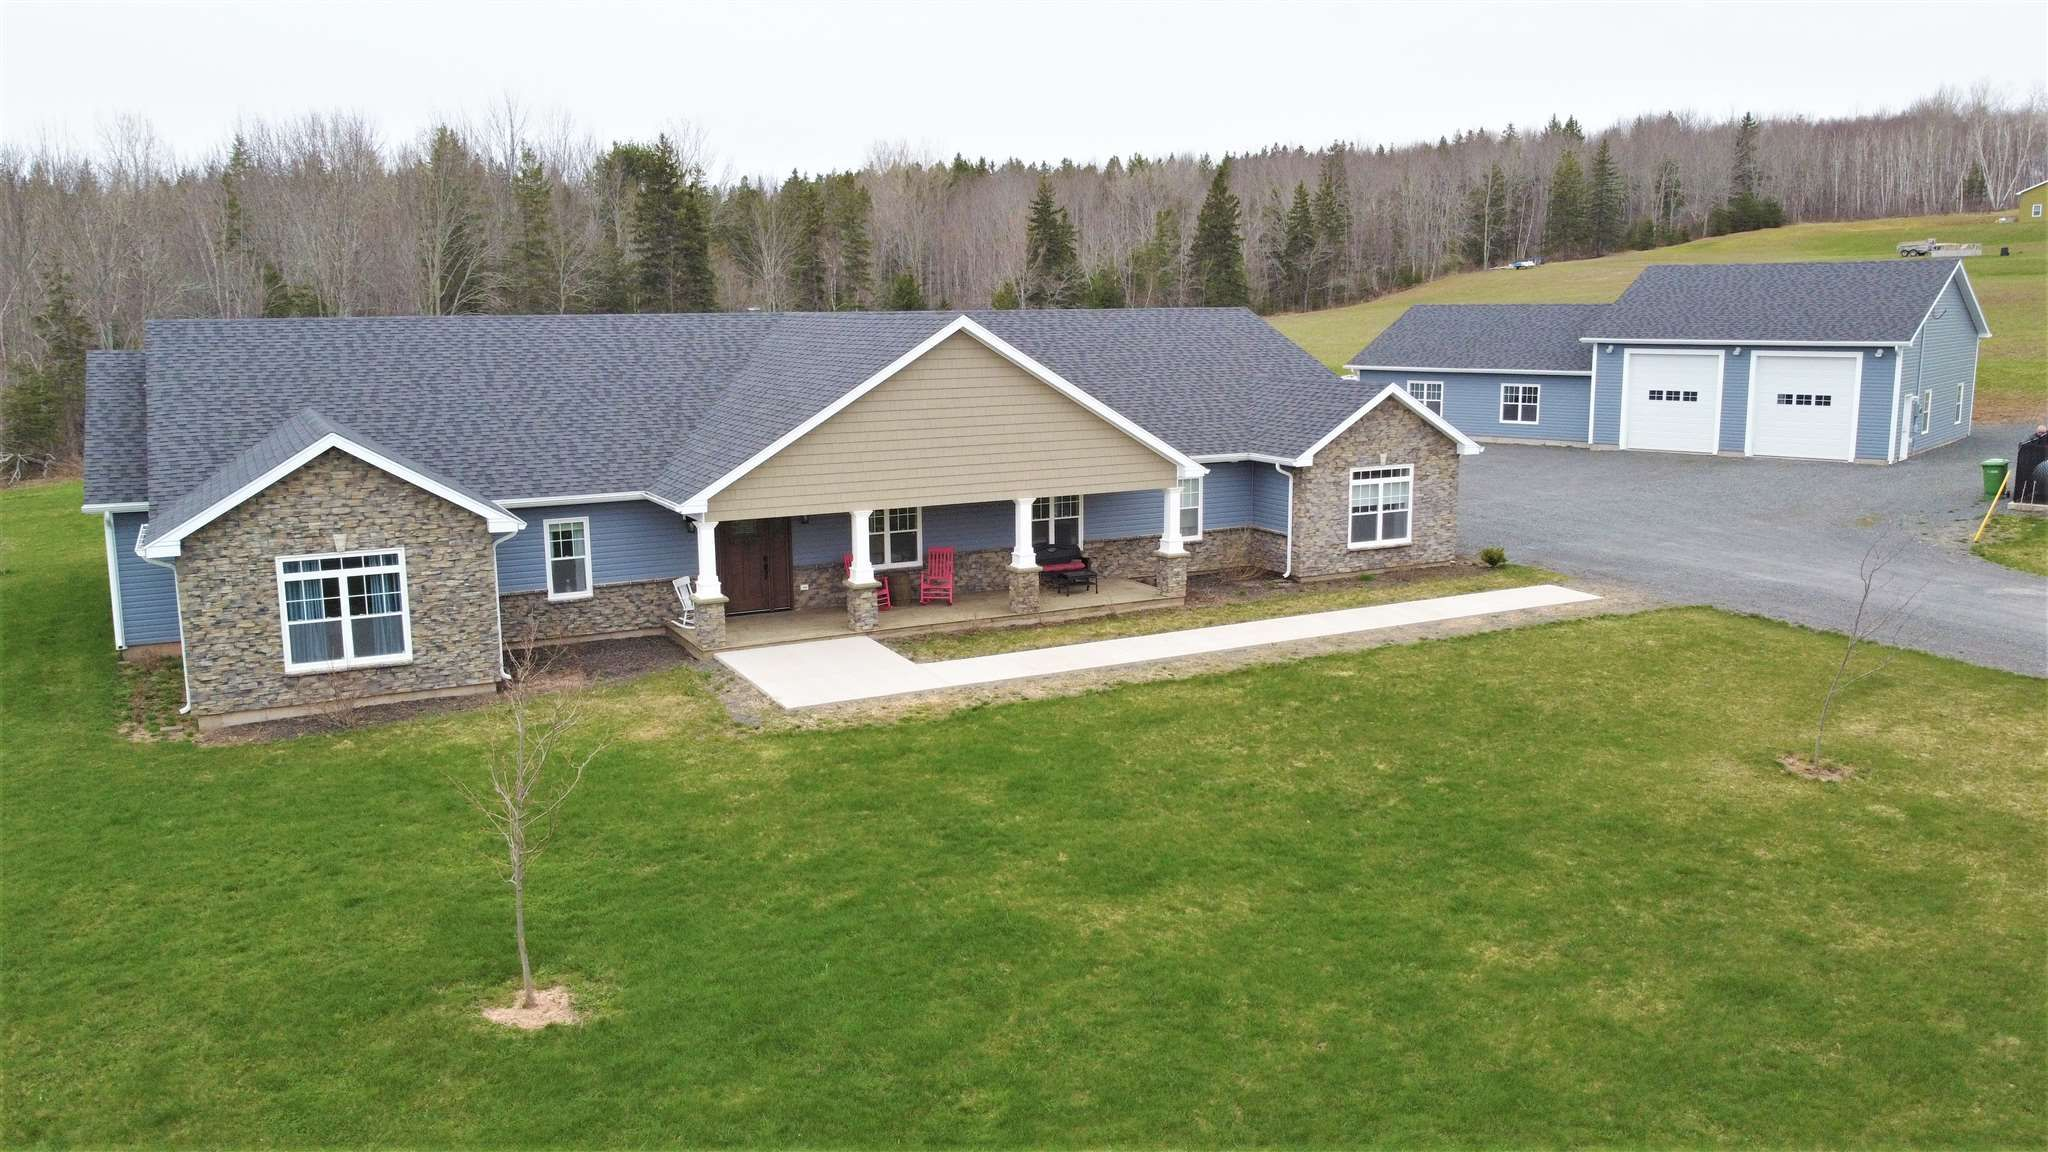 Main Photo: 358 Douglas Road in Alma: 108-Rural Pictou County Residential for sale (Northern Region)  : MLS®# 202109921